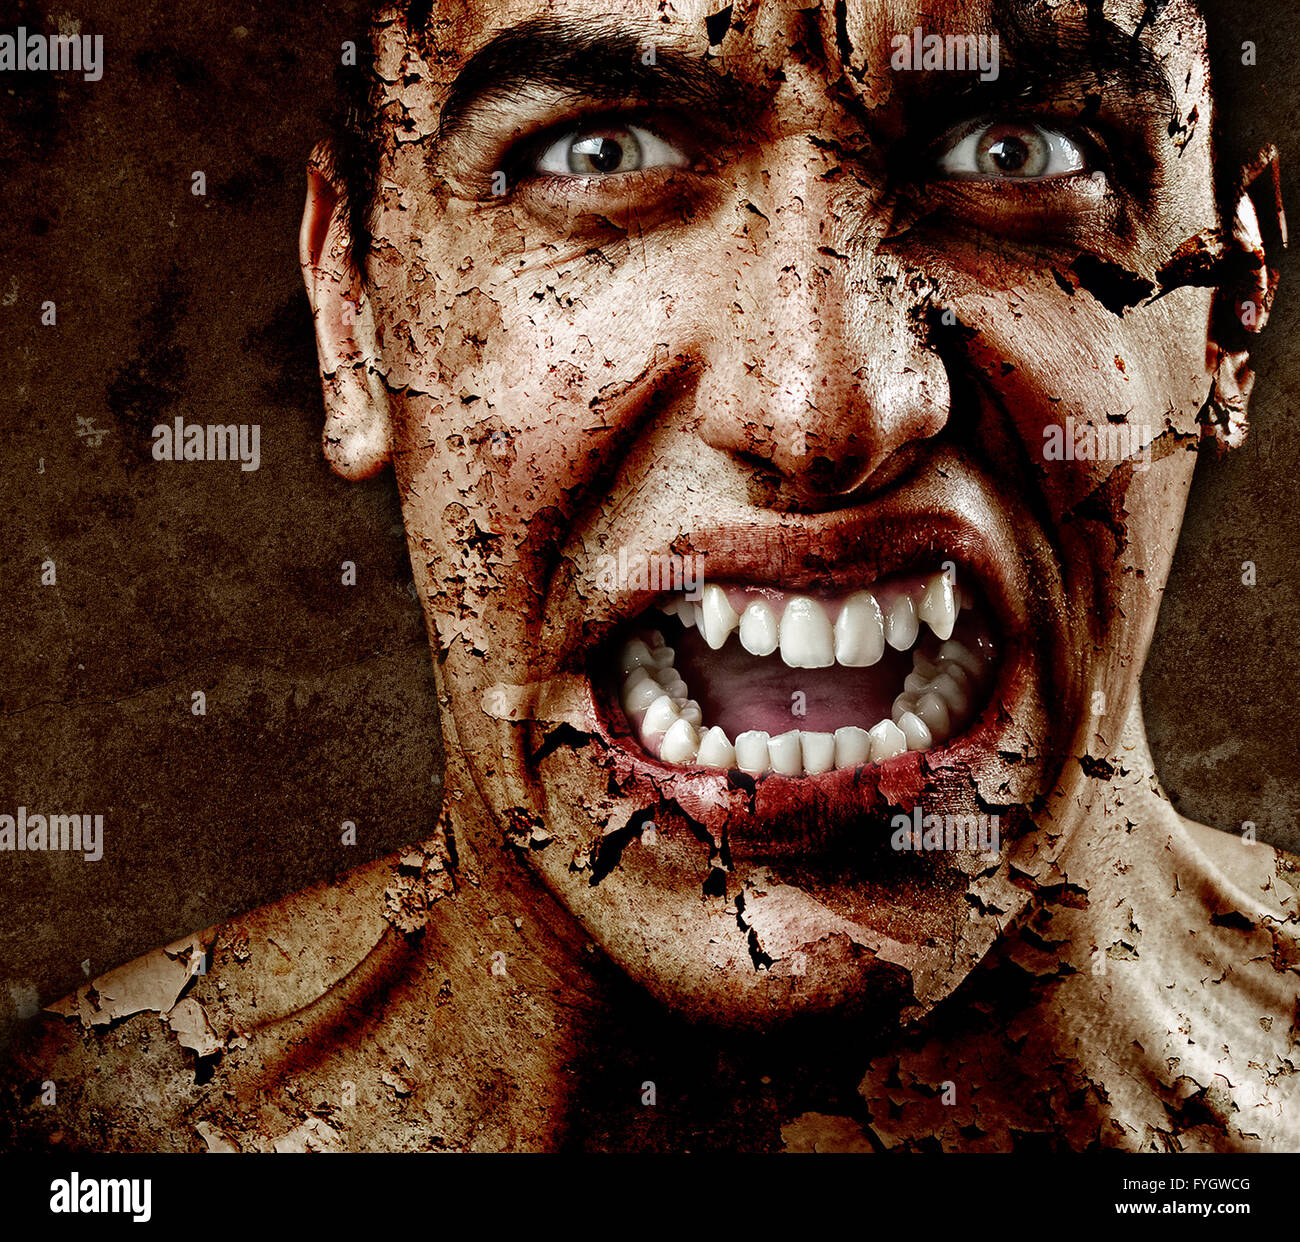 Face of Scary Man with Textured Peeling Skin - Stock Image